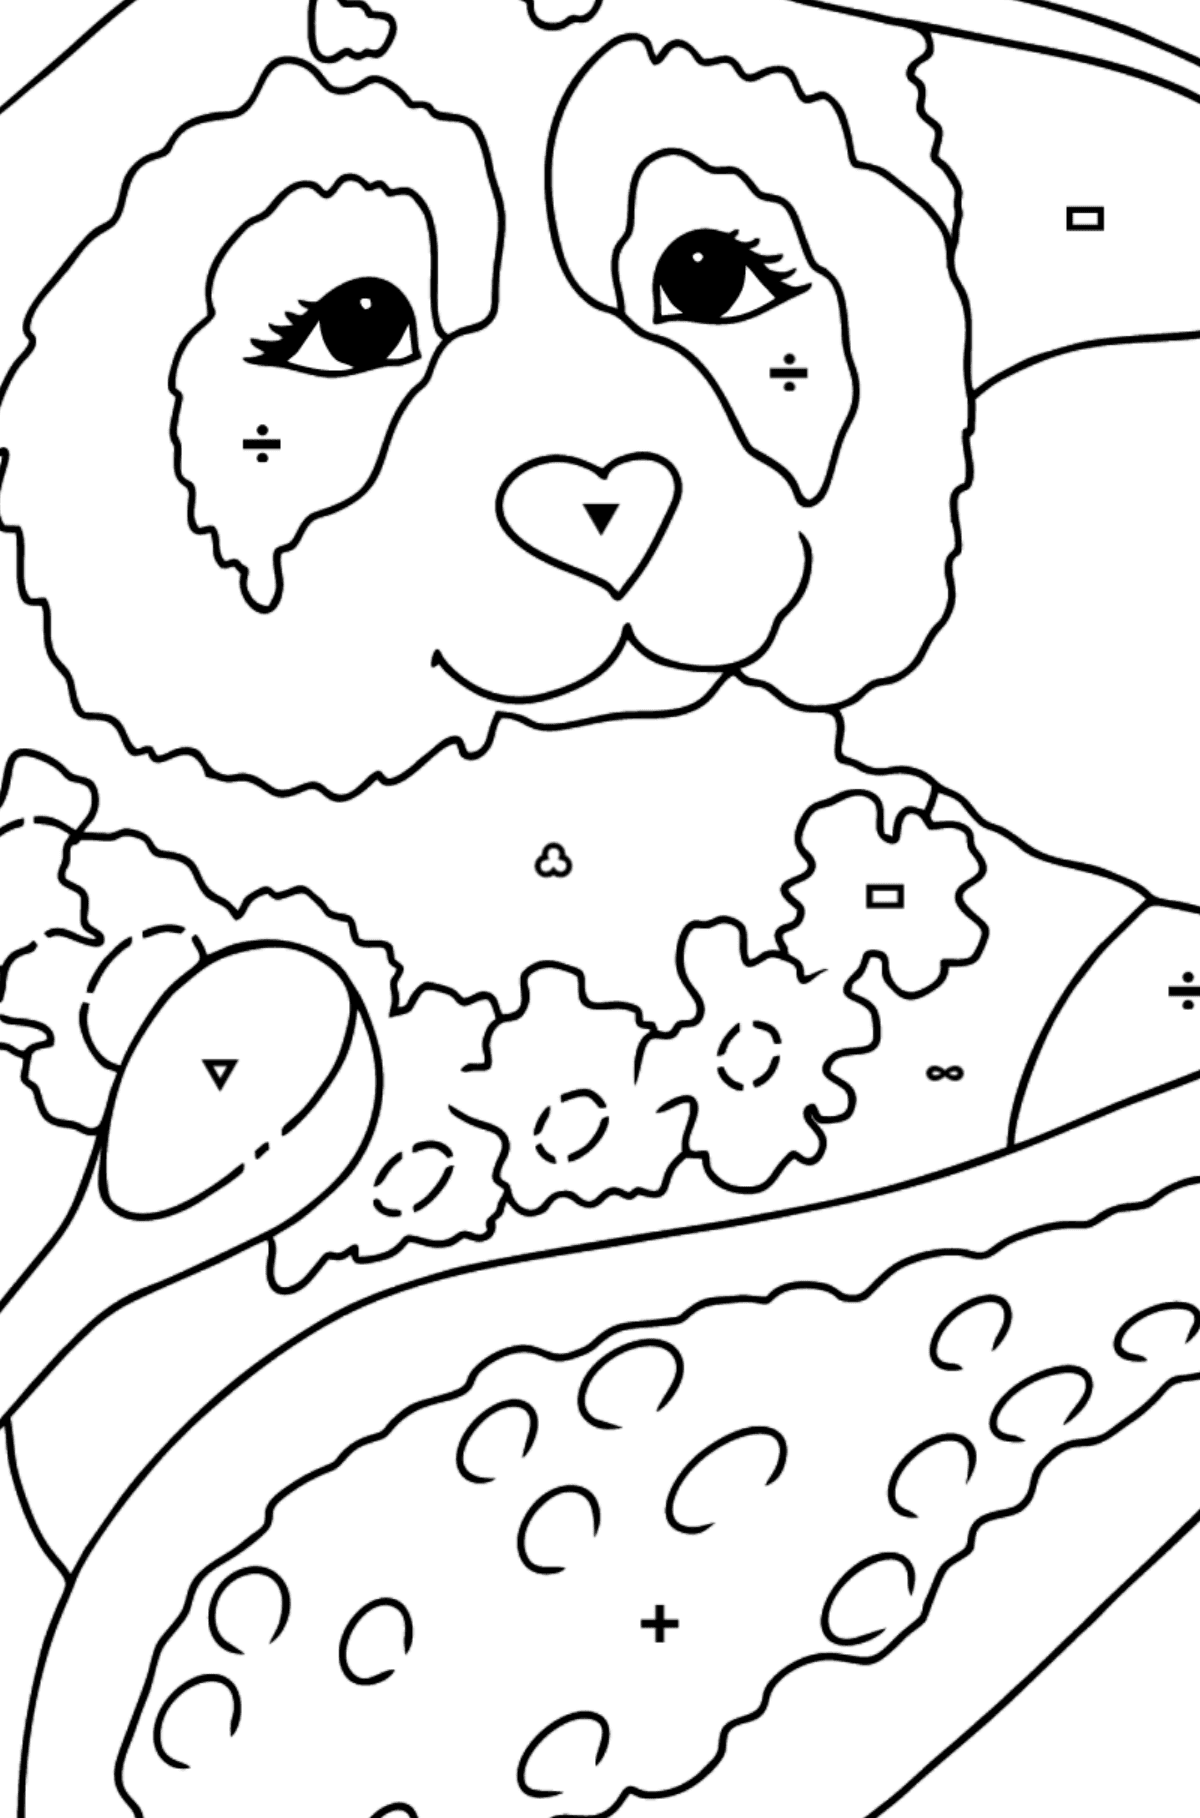 Coloring Page - A Panda is Having Lunch - Coloring by Symbols and Geometric Shapes for Kids